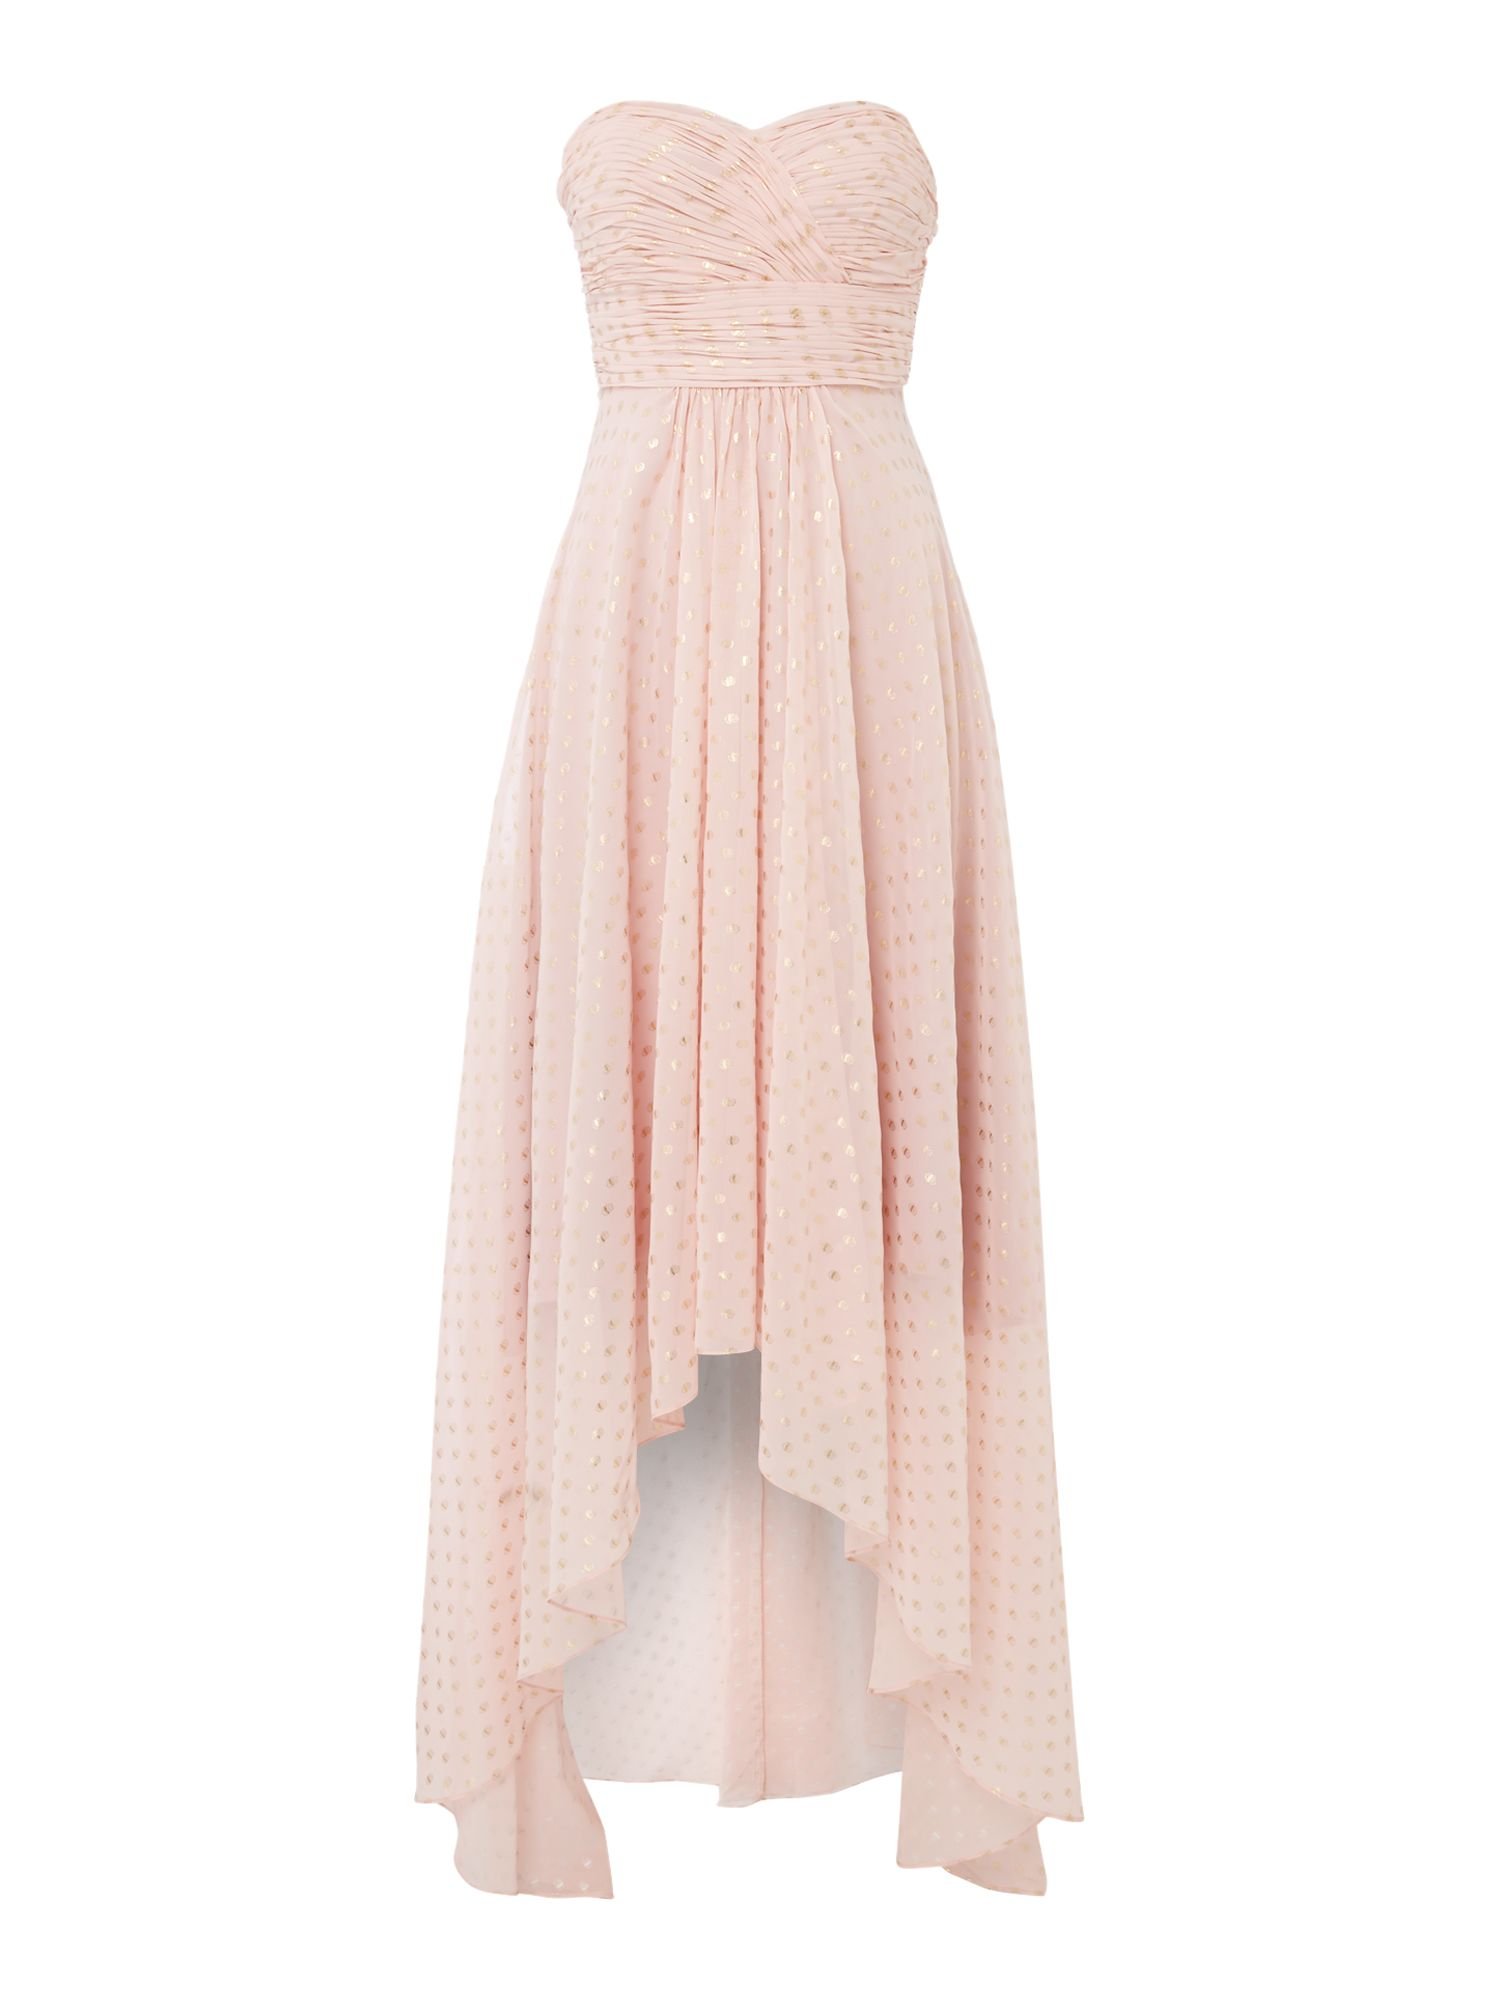 Studio 75 Studio 75 Strapless Sweetheart Neck Maxi Dress, Pink